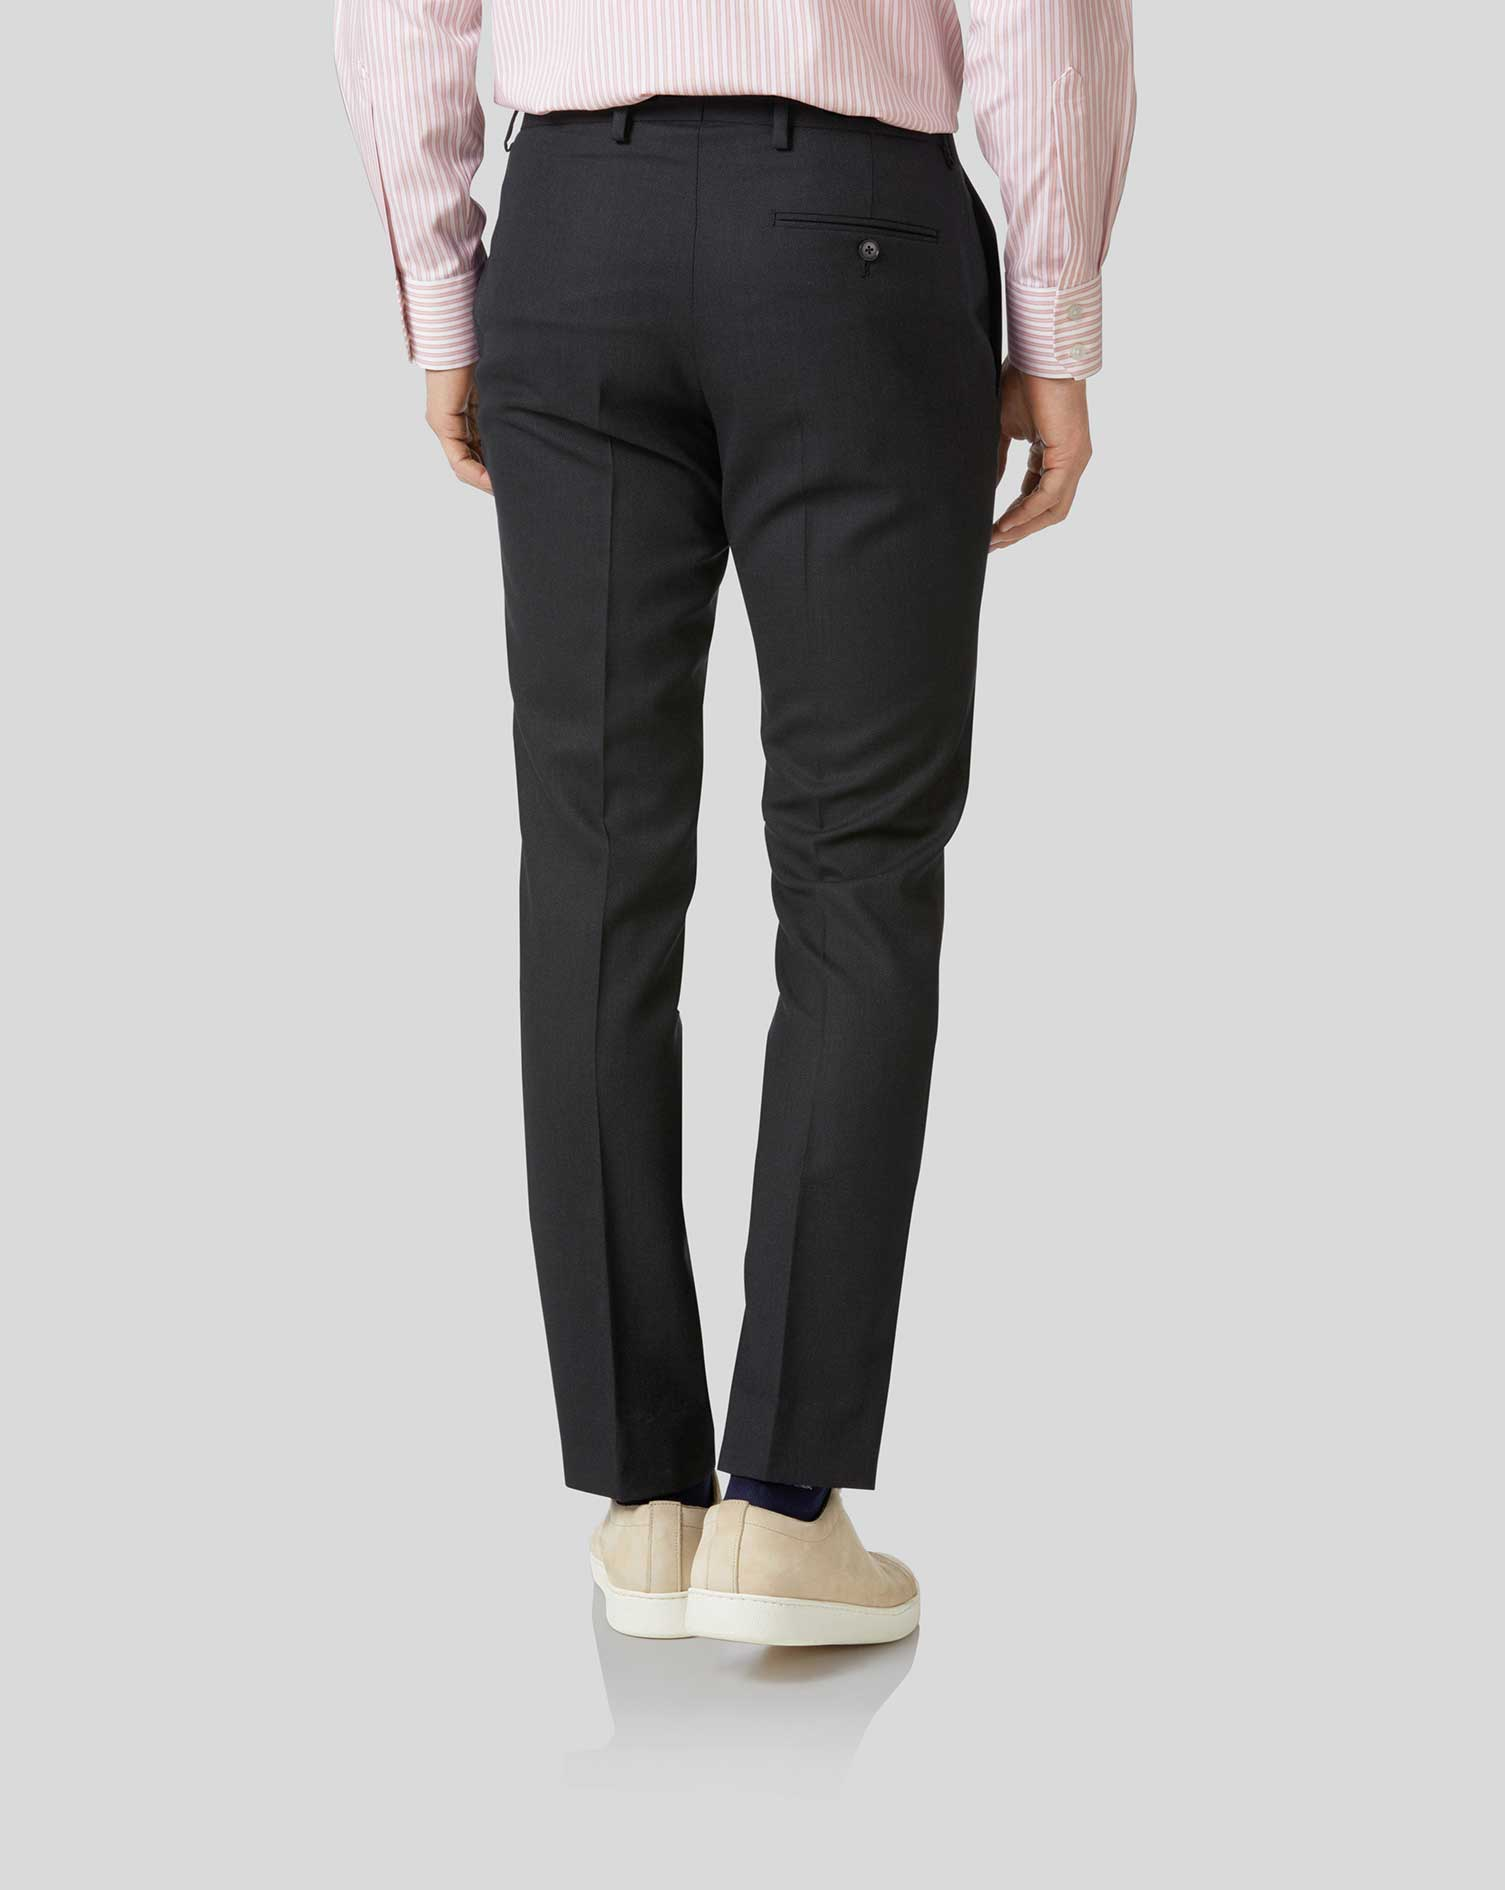 Charcoal slim fit birdseye travel suit pants